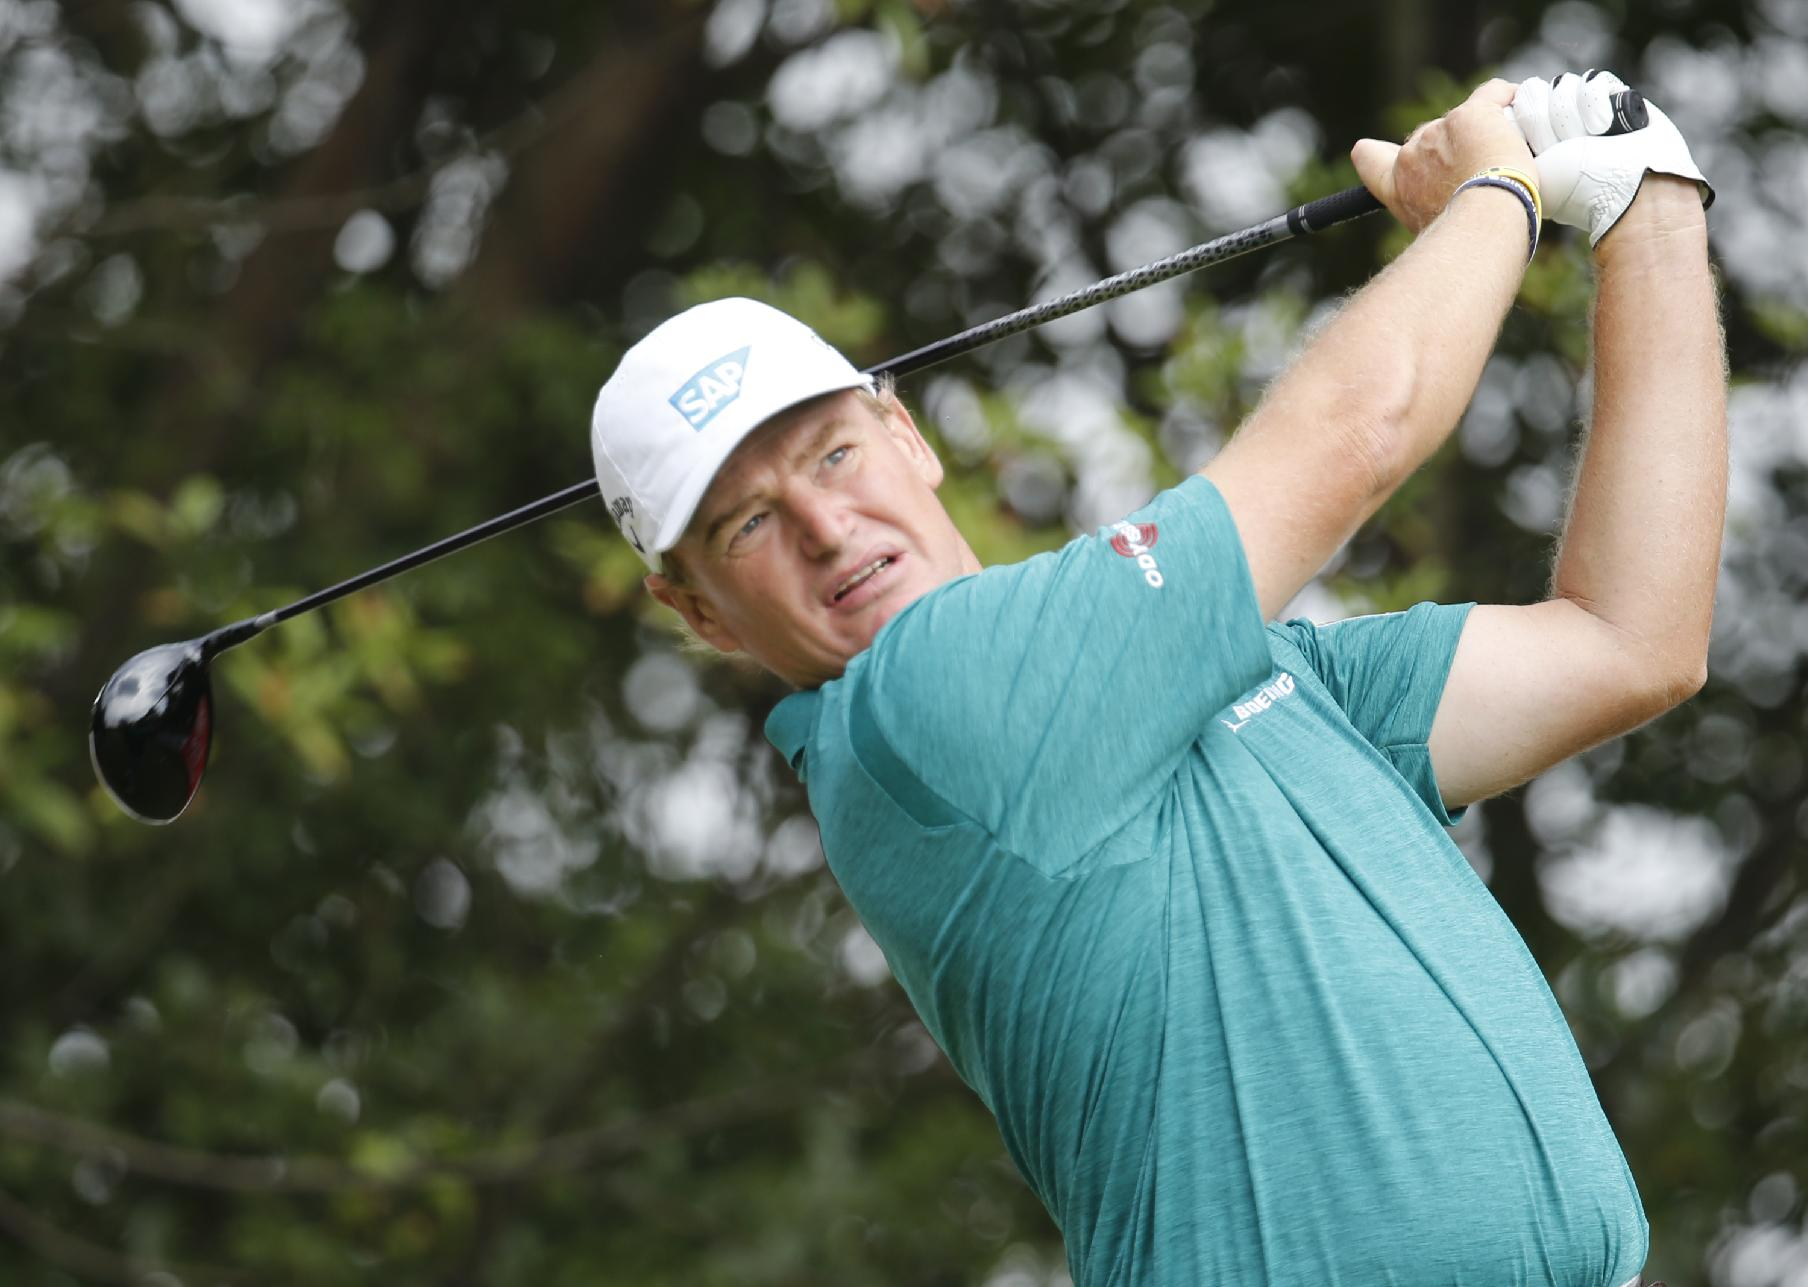 South African Ernie Els tees off the 9th hole during the second round of the HSBC Champions golf tournament at the Sheshan International Golf Club in Shanghai, China, Friday, Nov. 1, 2013